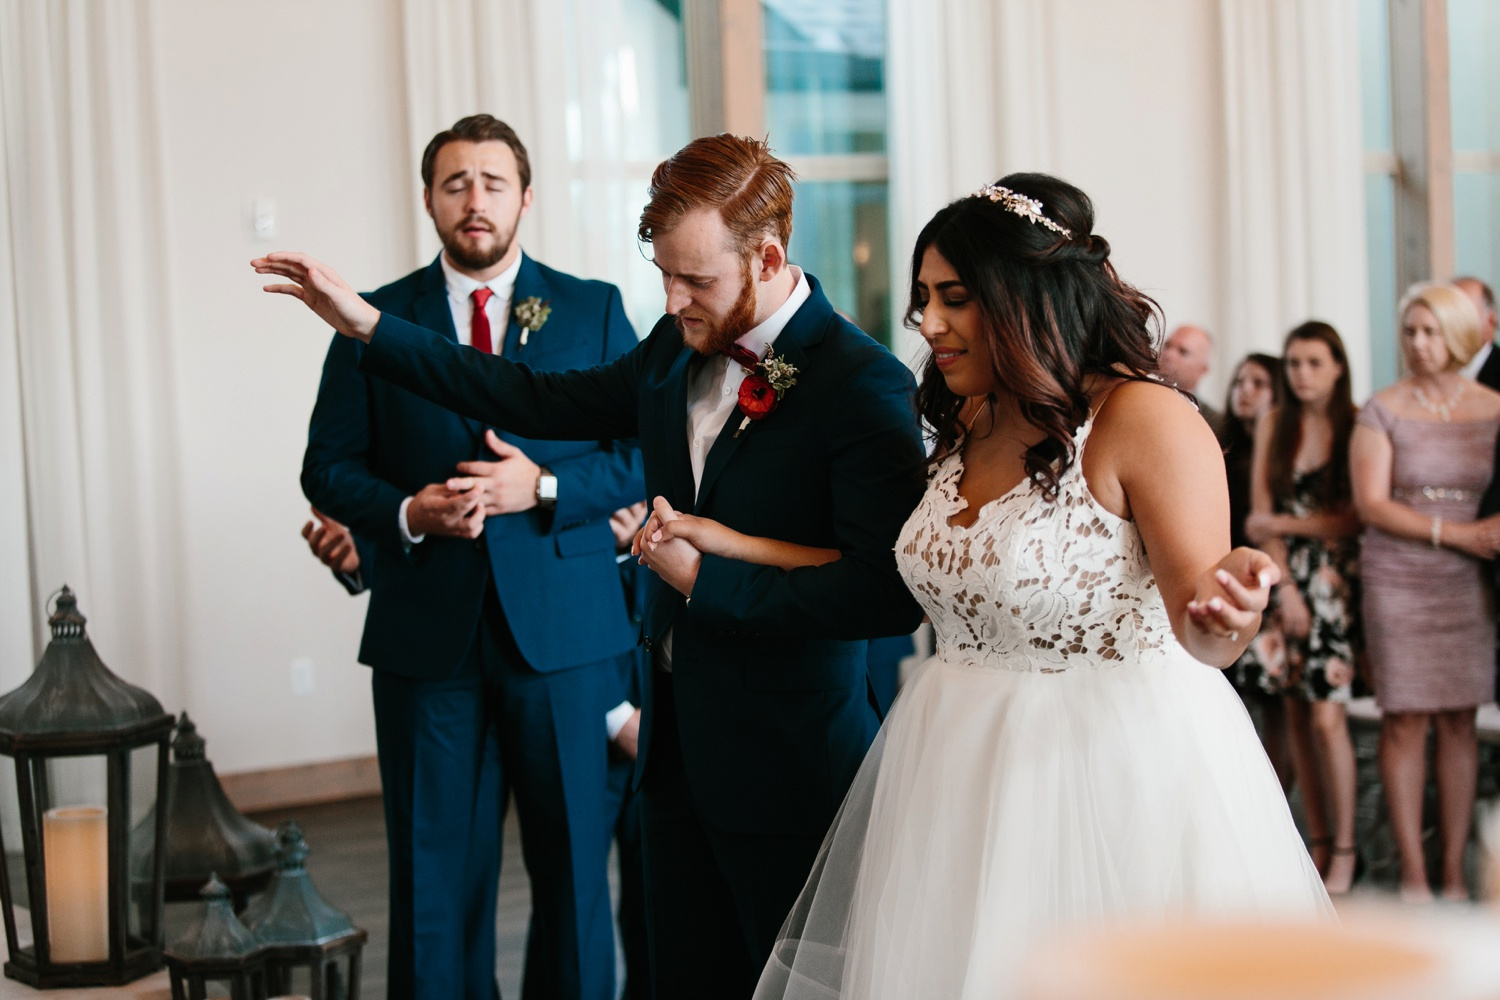 Grant + Lysette | a vibrant, deep burgundy and navy, and mixed metals wedding at Hidden Pines Chapel by North Texas Wedding Photographer Rachel Meagan Photography 070